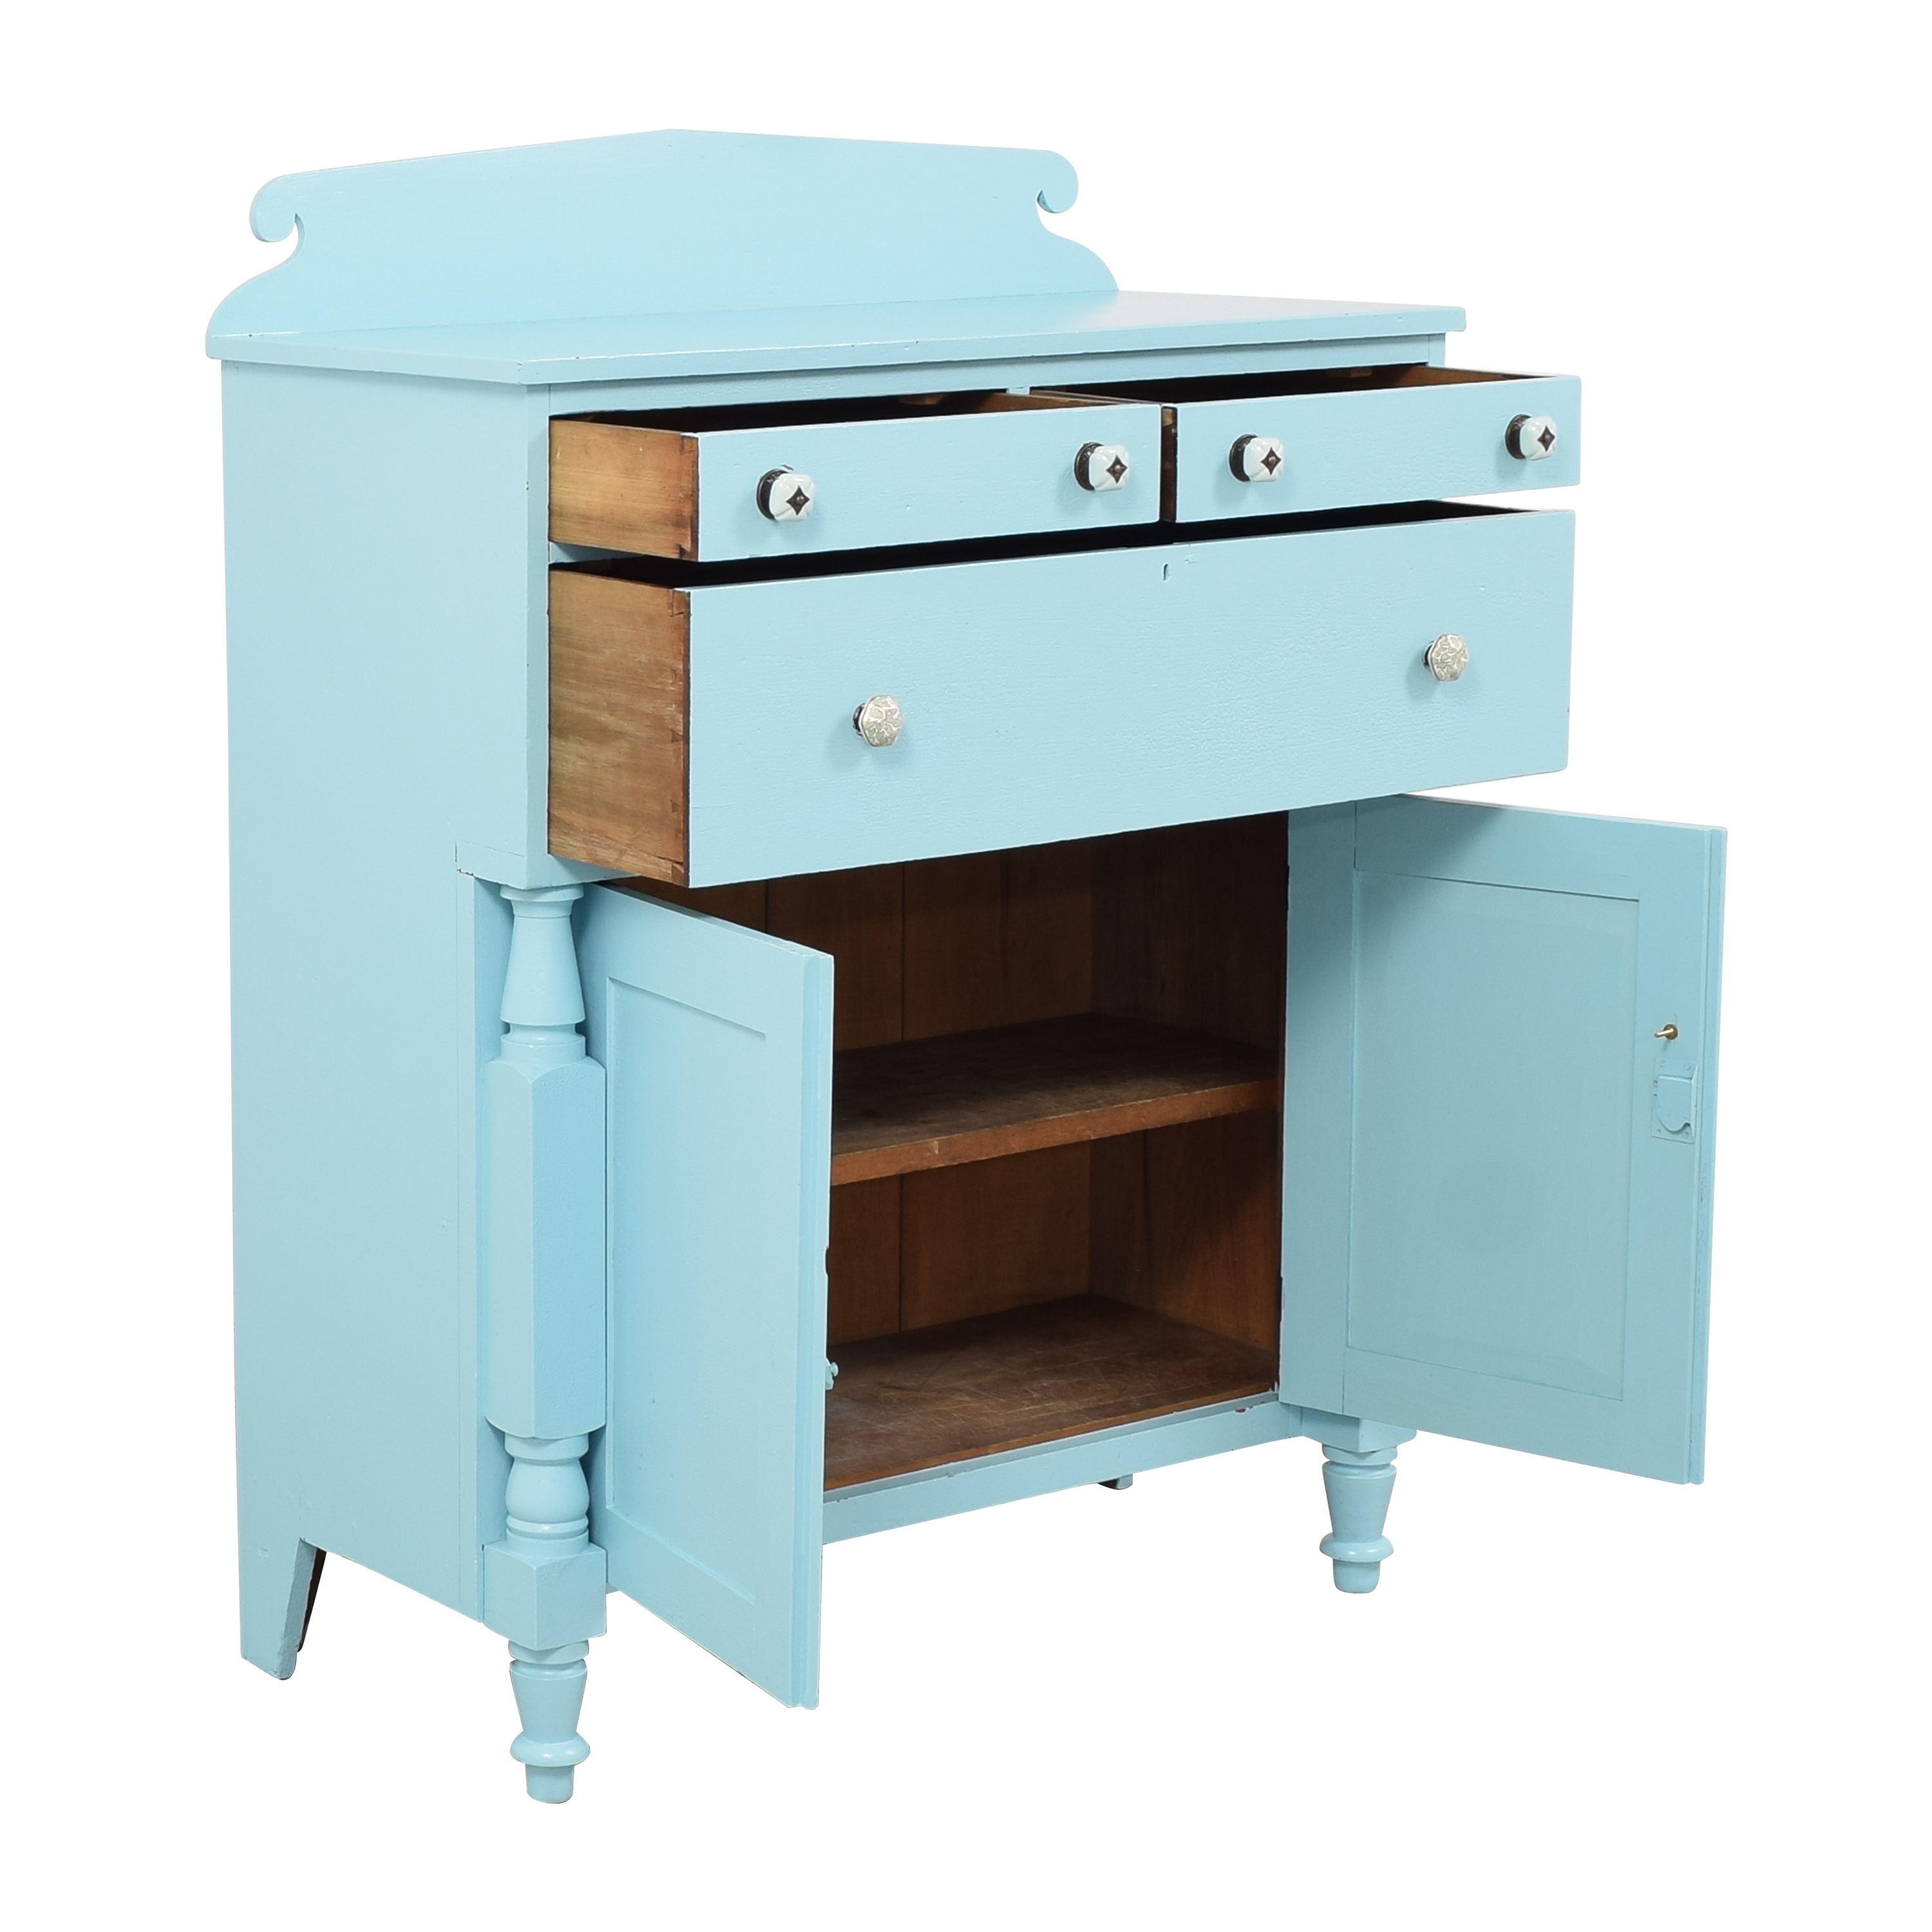 Painted Two Door Storage Cabinet used